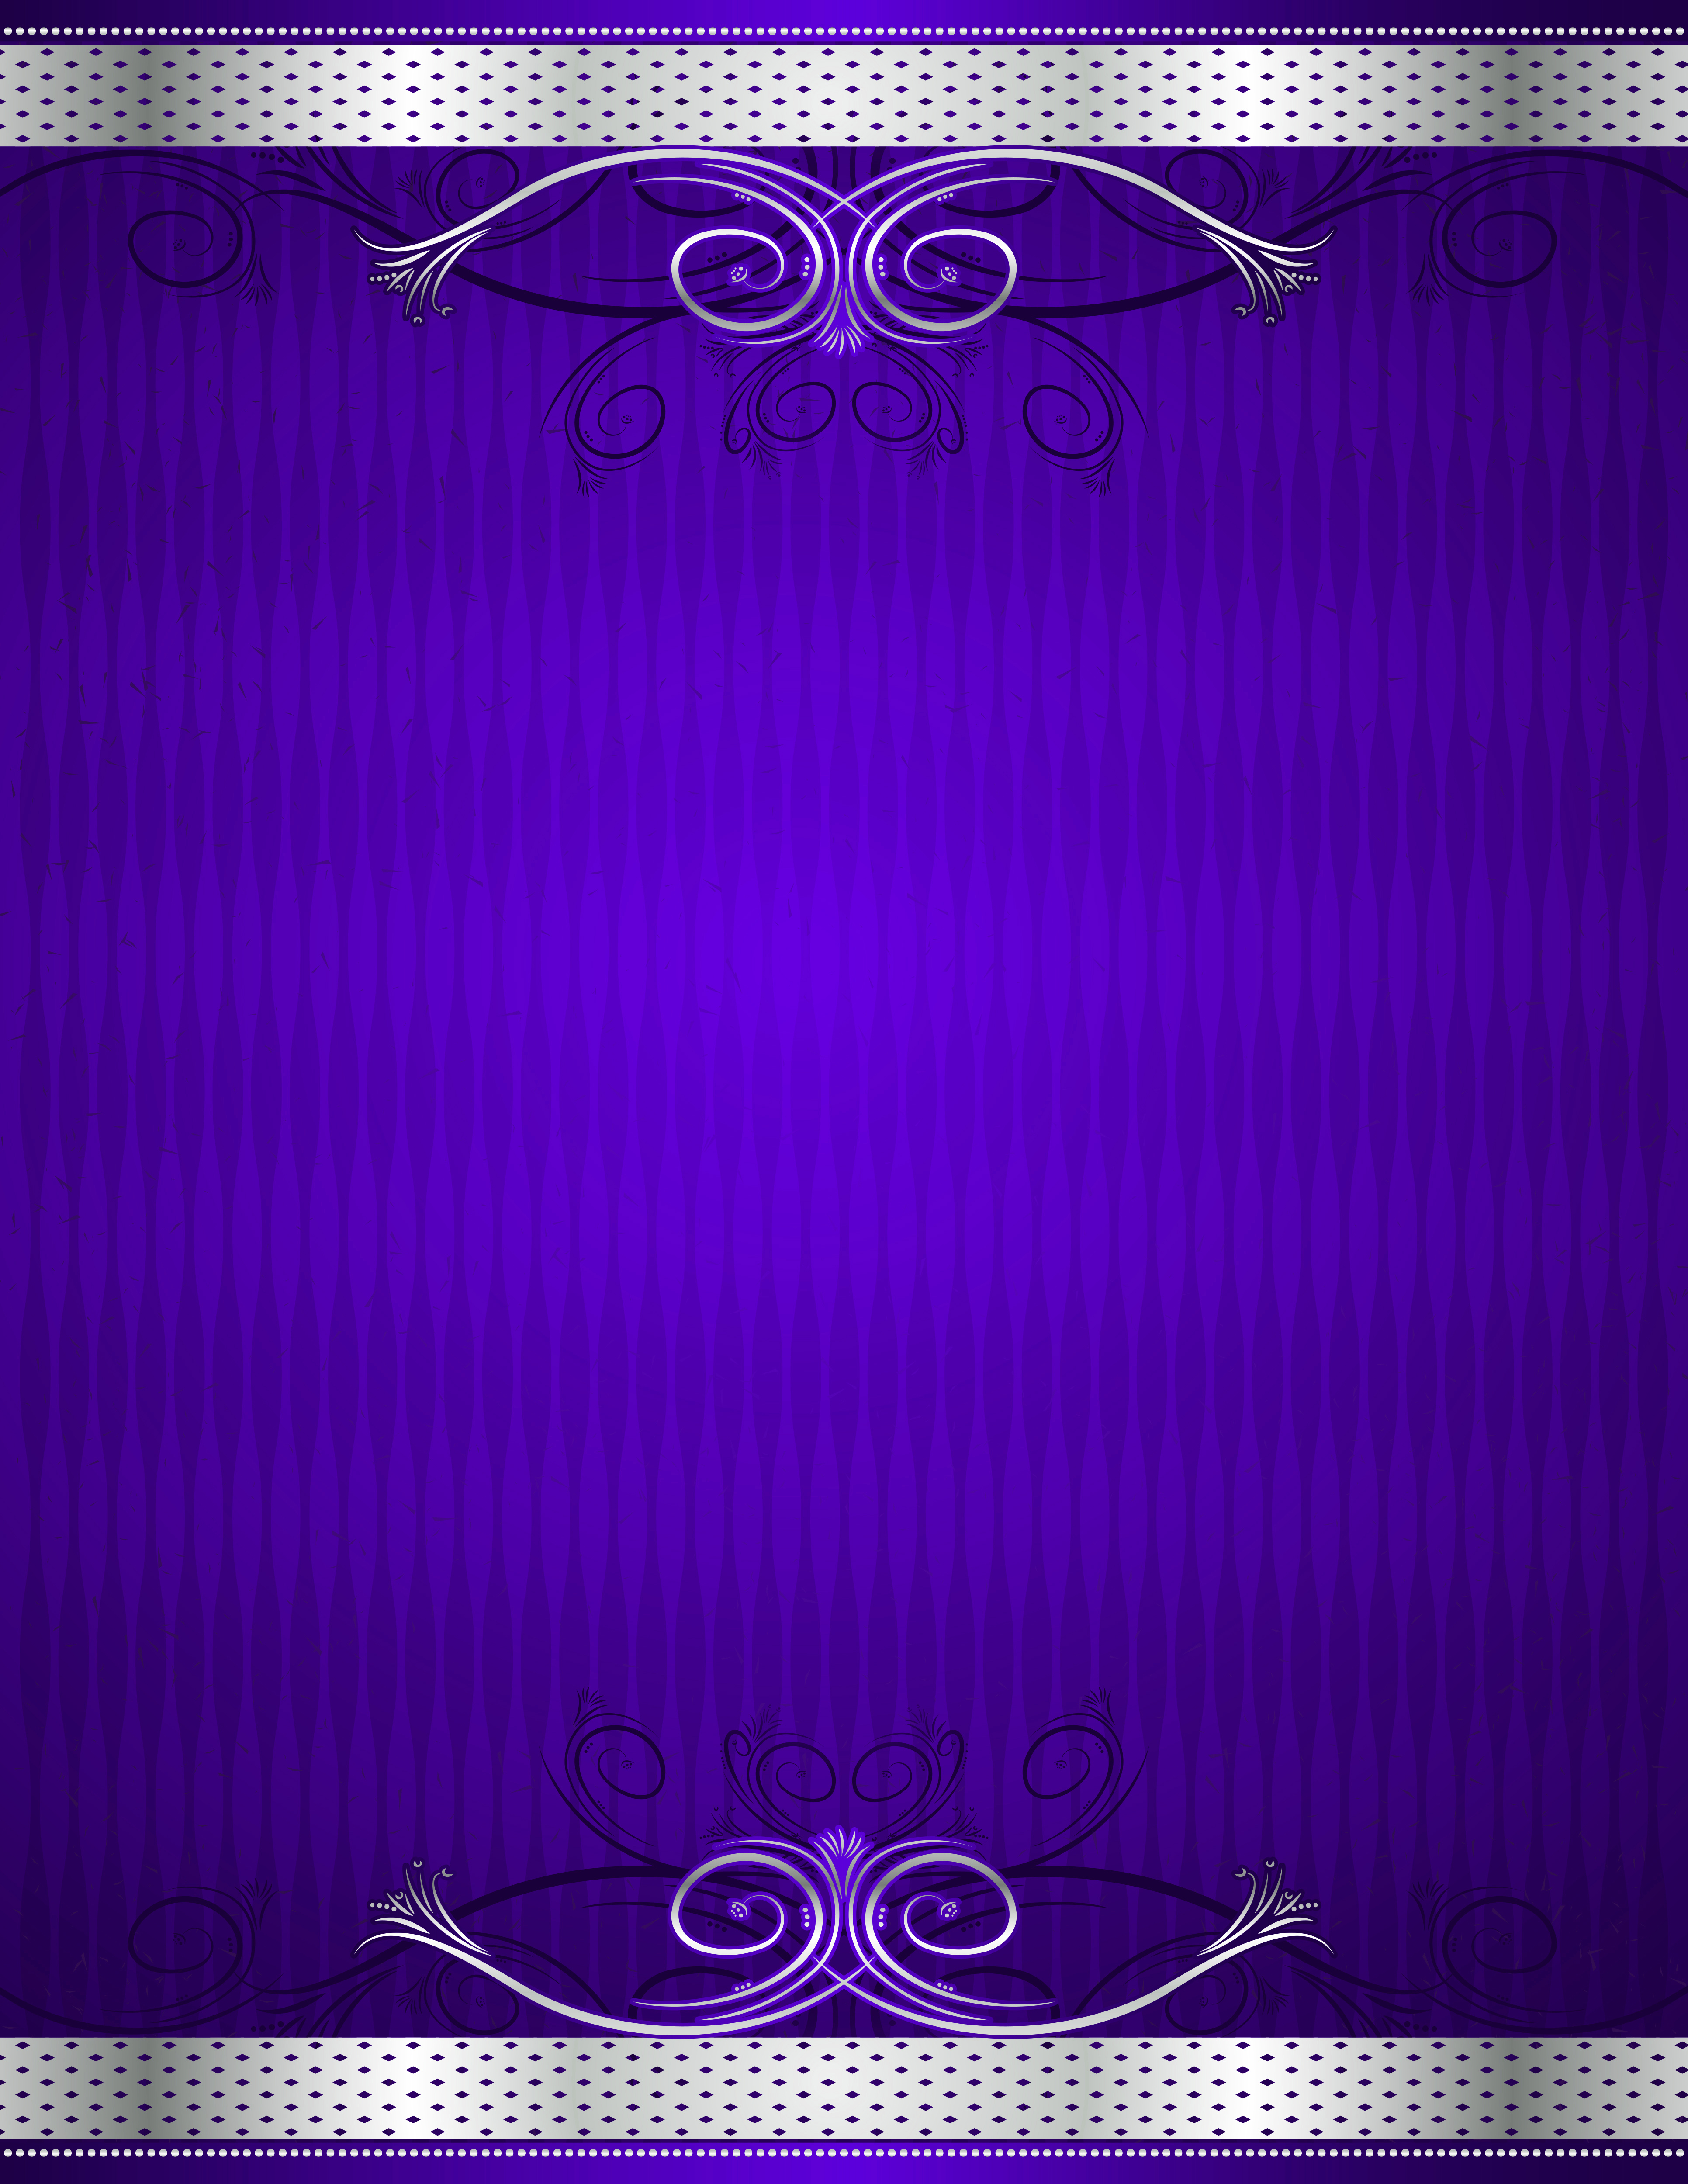 Purple and silver backgrounds clipart images gallery for